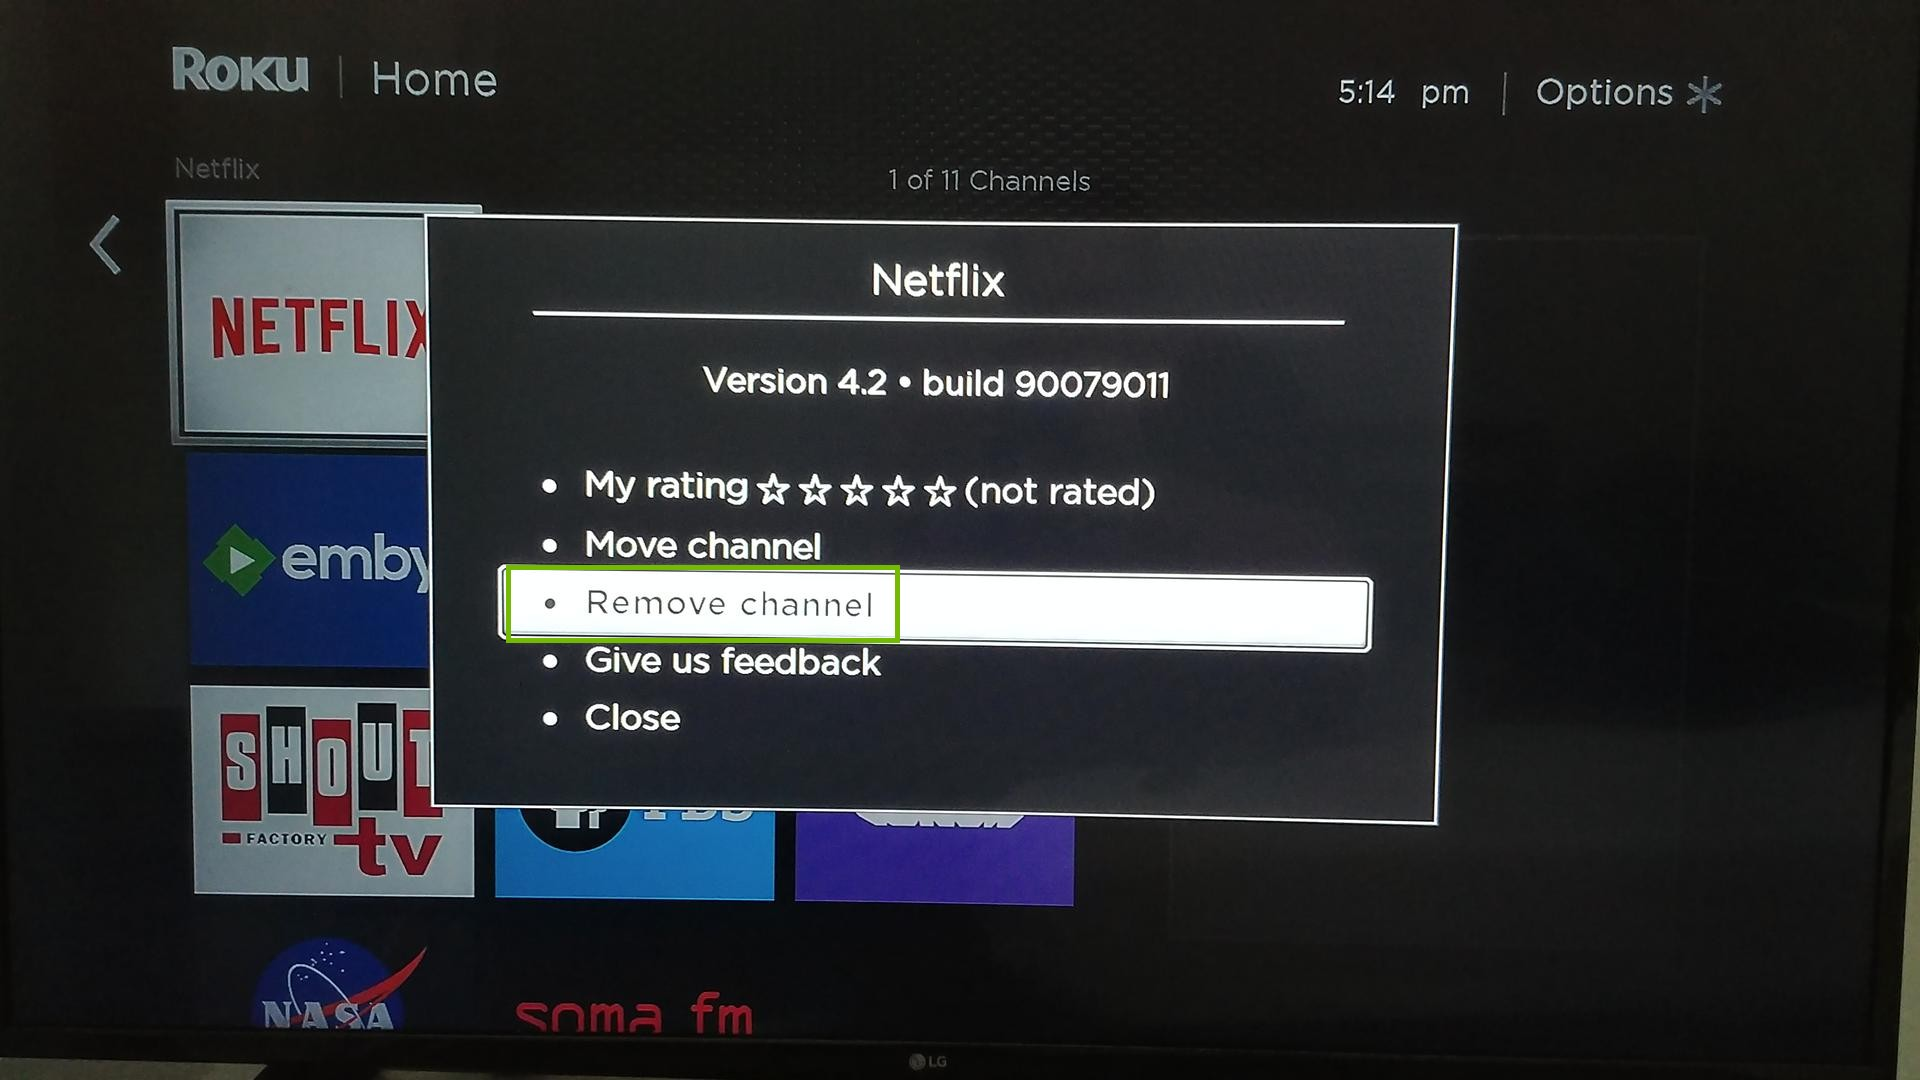 Roku TV app menu, highlighting the Remove channel option.